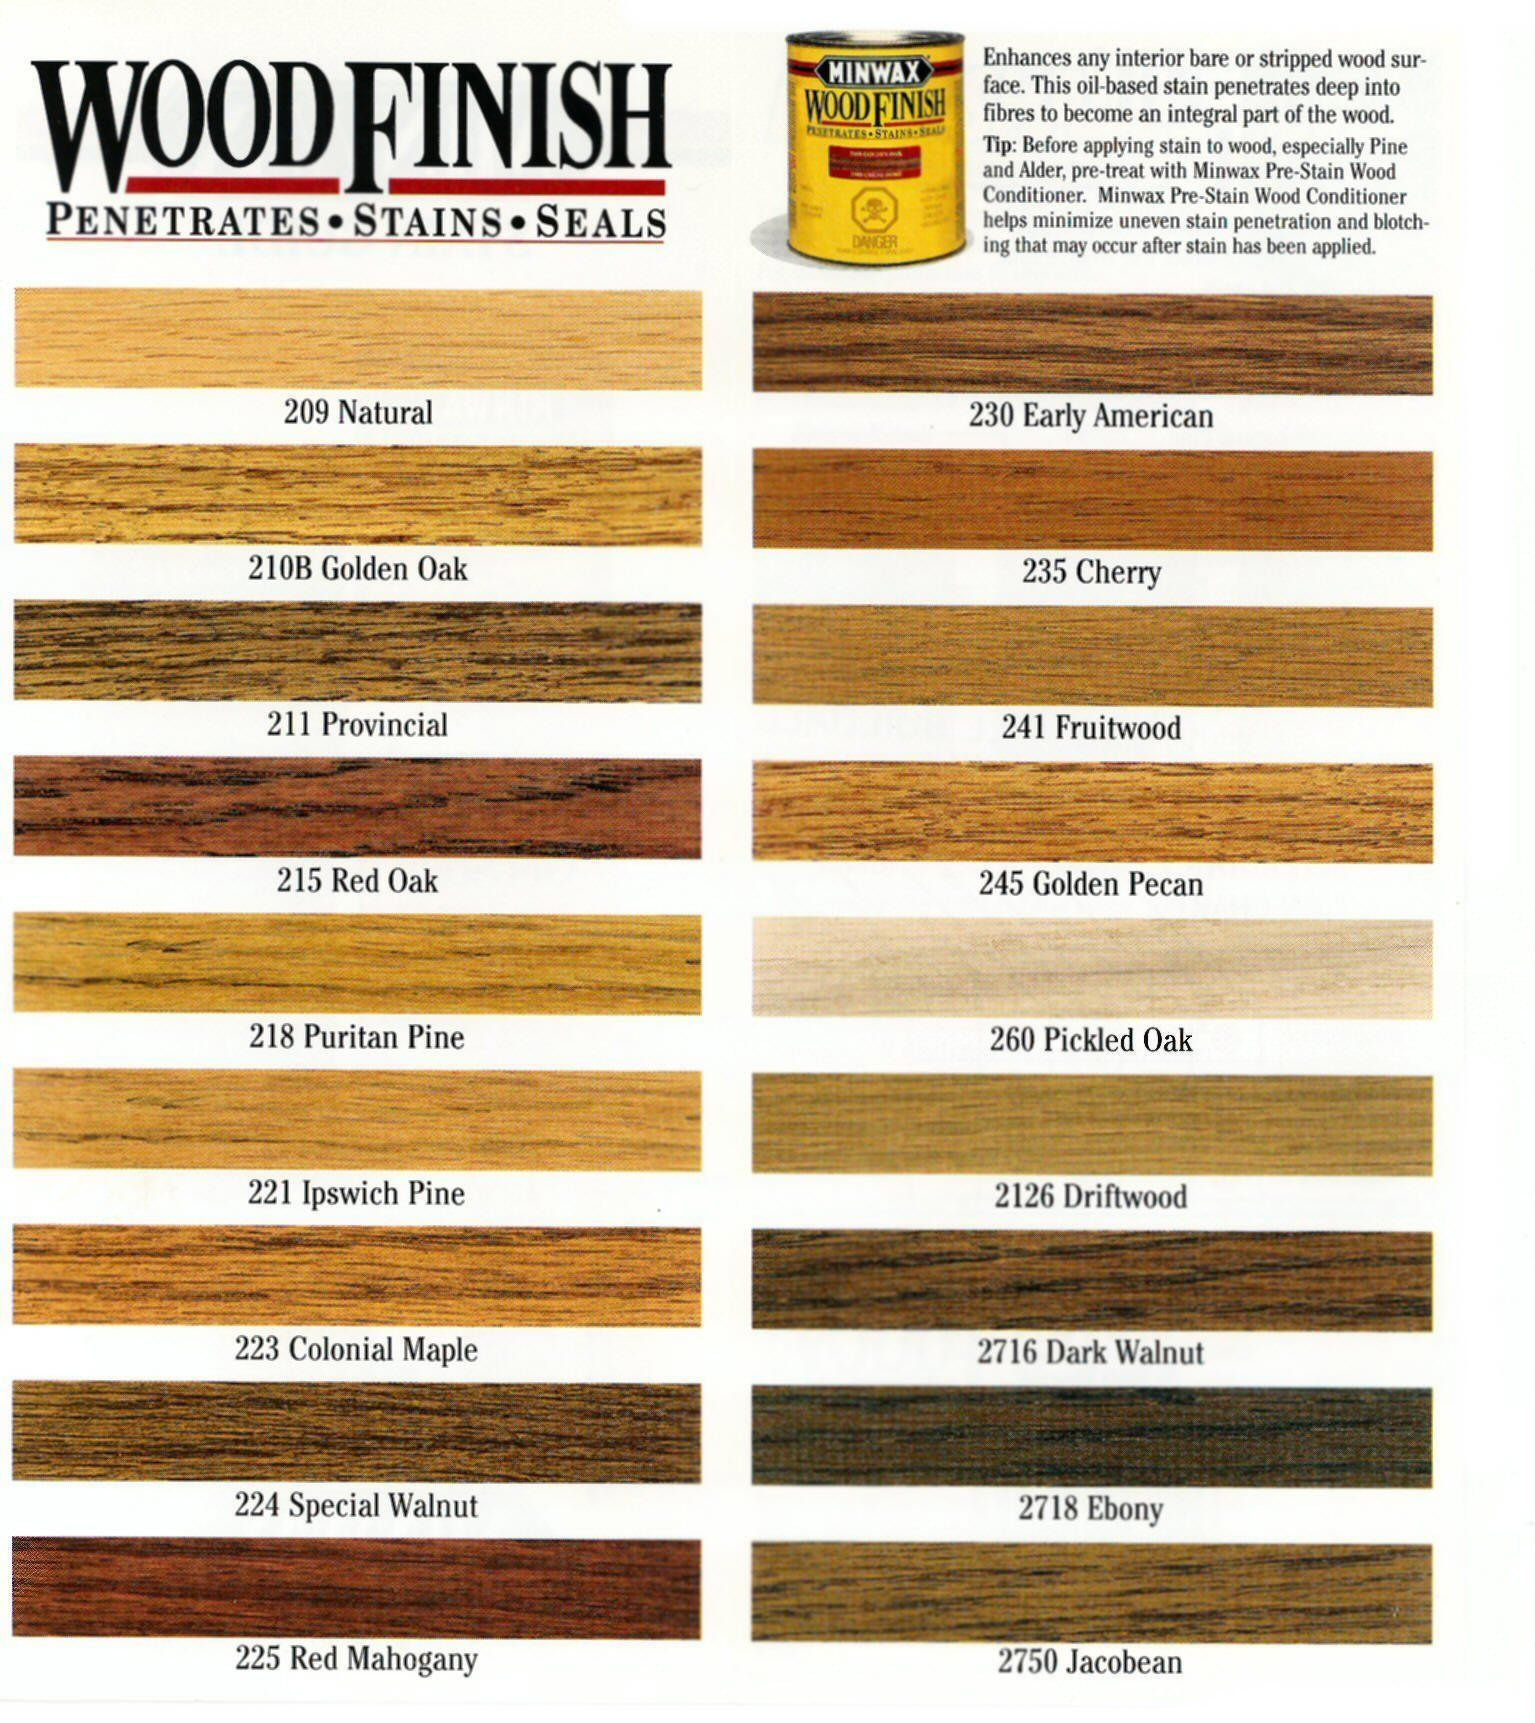 Creative glass church furnishings wood stains also zar stain color chart pine oak ranch bath pinterest rh